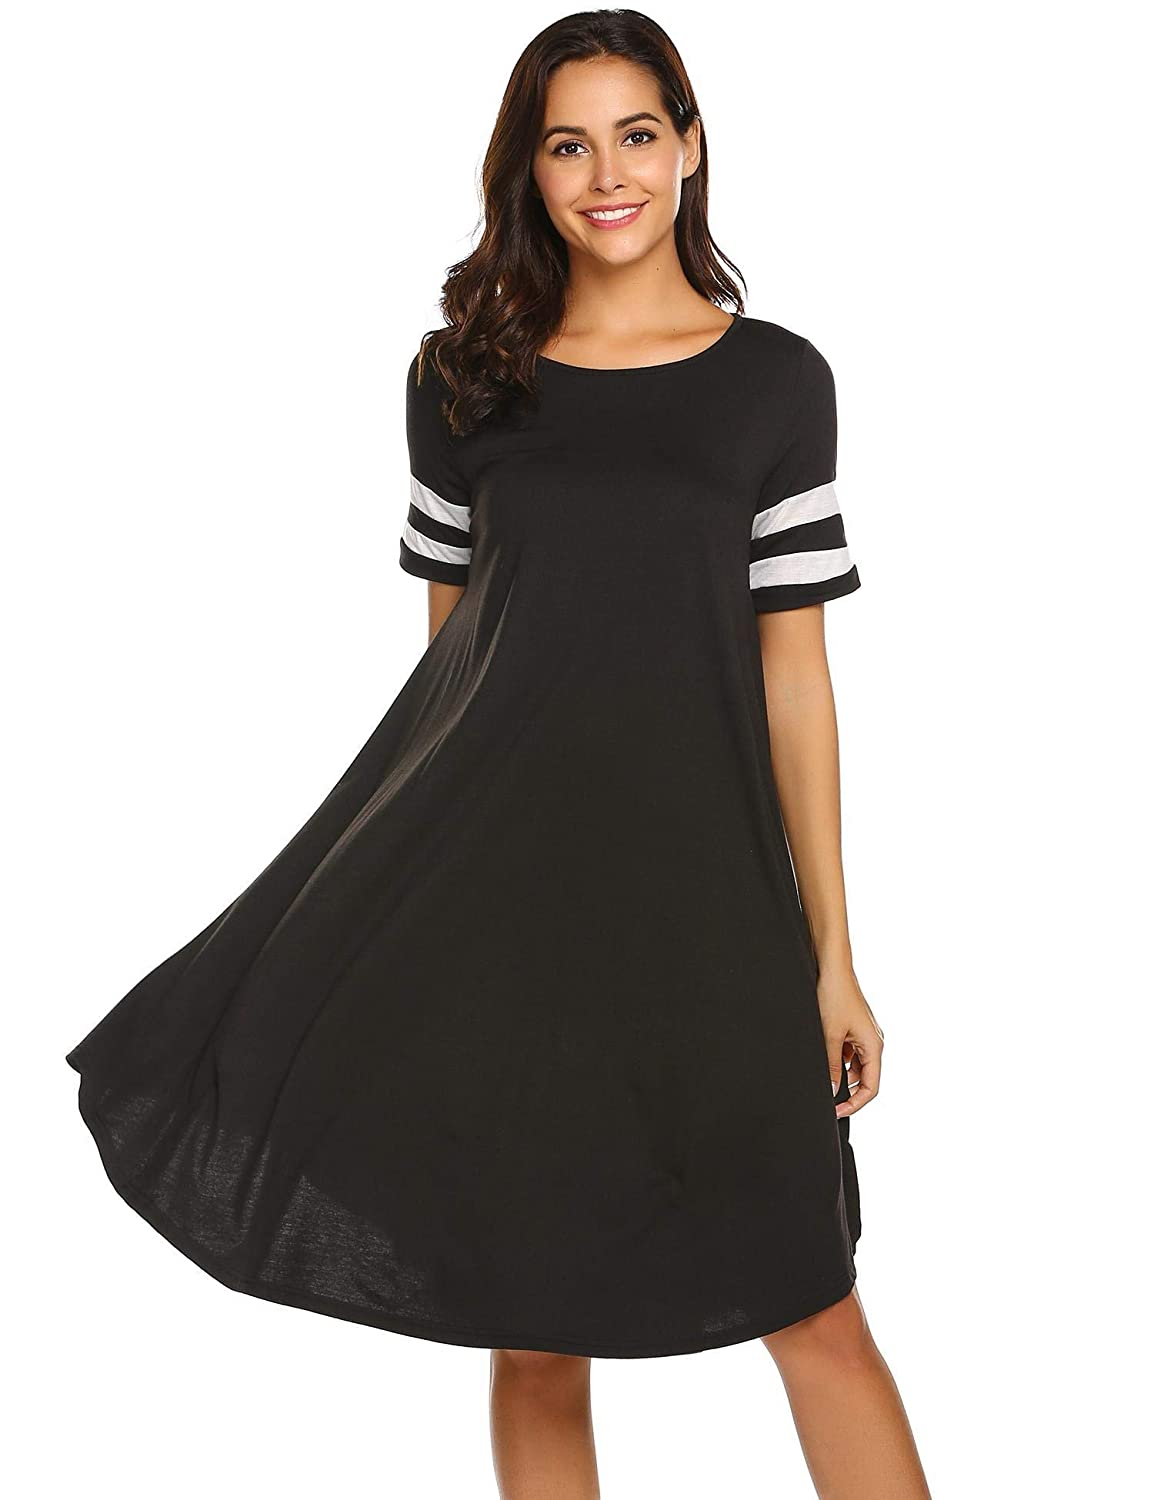 Black1 Wildtrest Women's Casual Plain Pocket Loose TShirt Dress